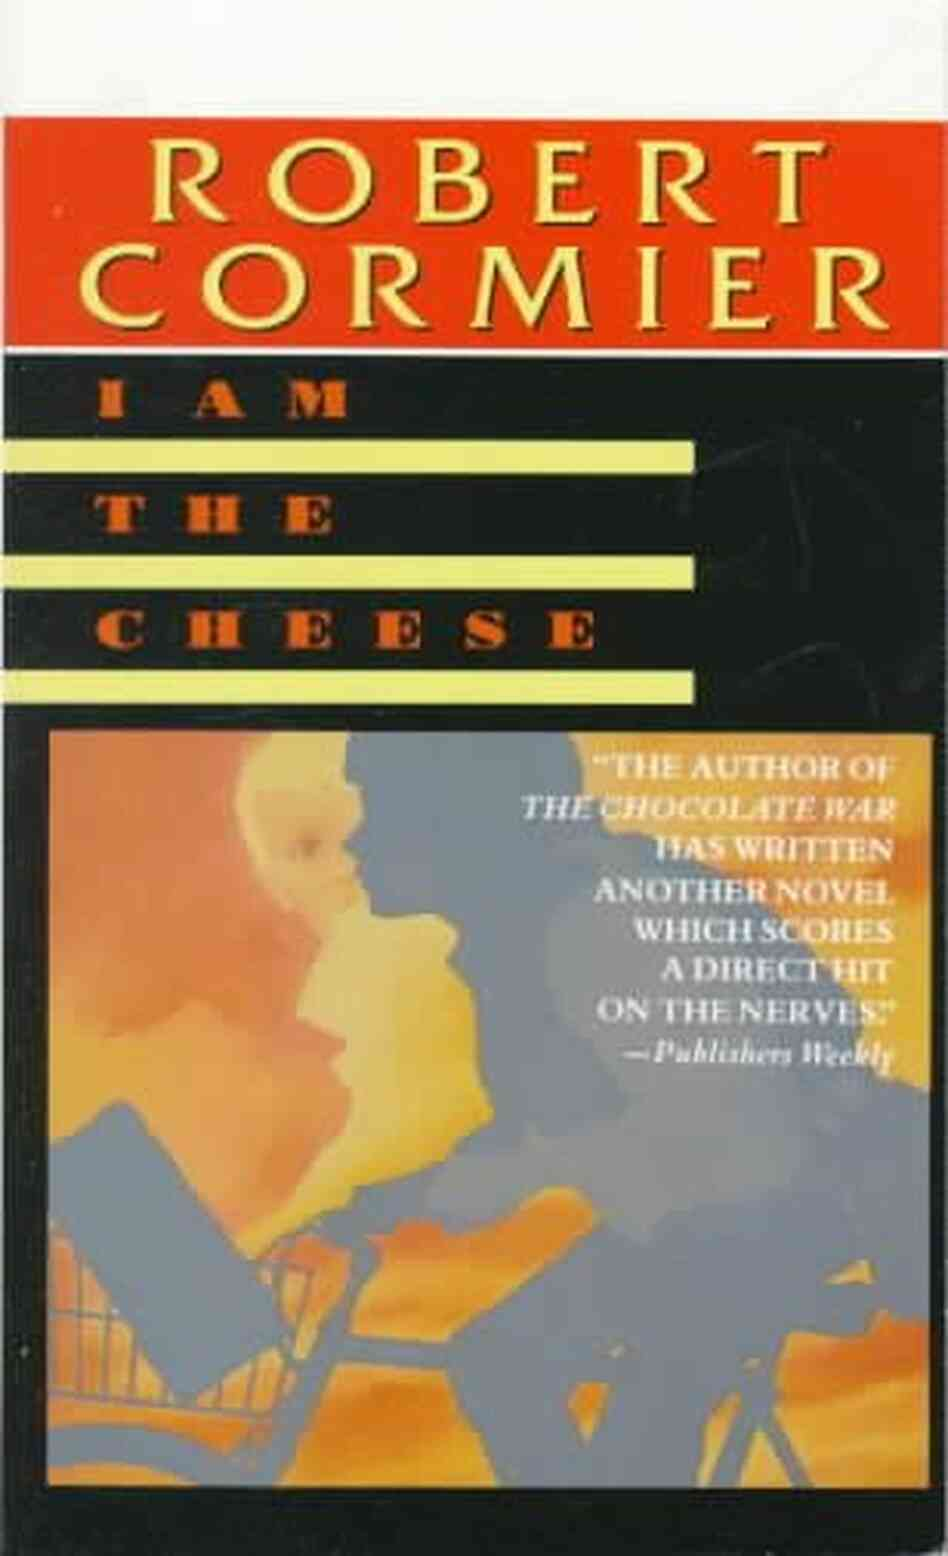 literary analysis of the novel i am the cheese by robert cormier I am the cheese by robert cormier novel 256 pages grades 5-9 find this book: amazon review this is a frightening novel which, like many of cormier's books, makes the reader as afraid to go forward as his main character is.